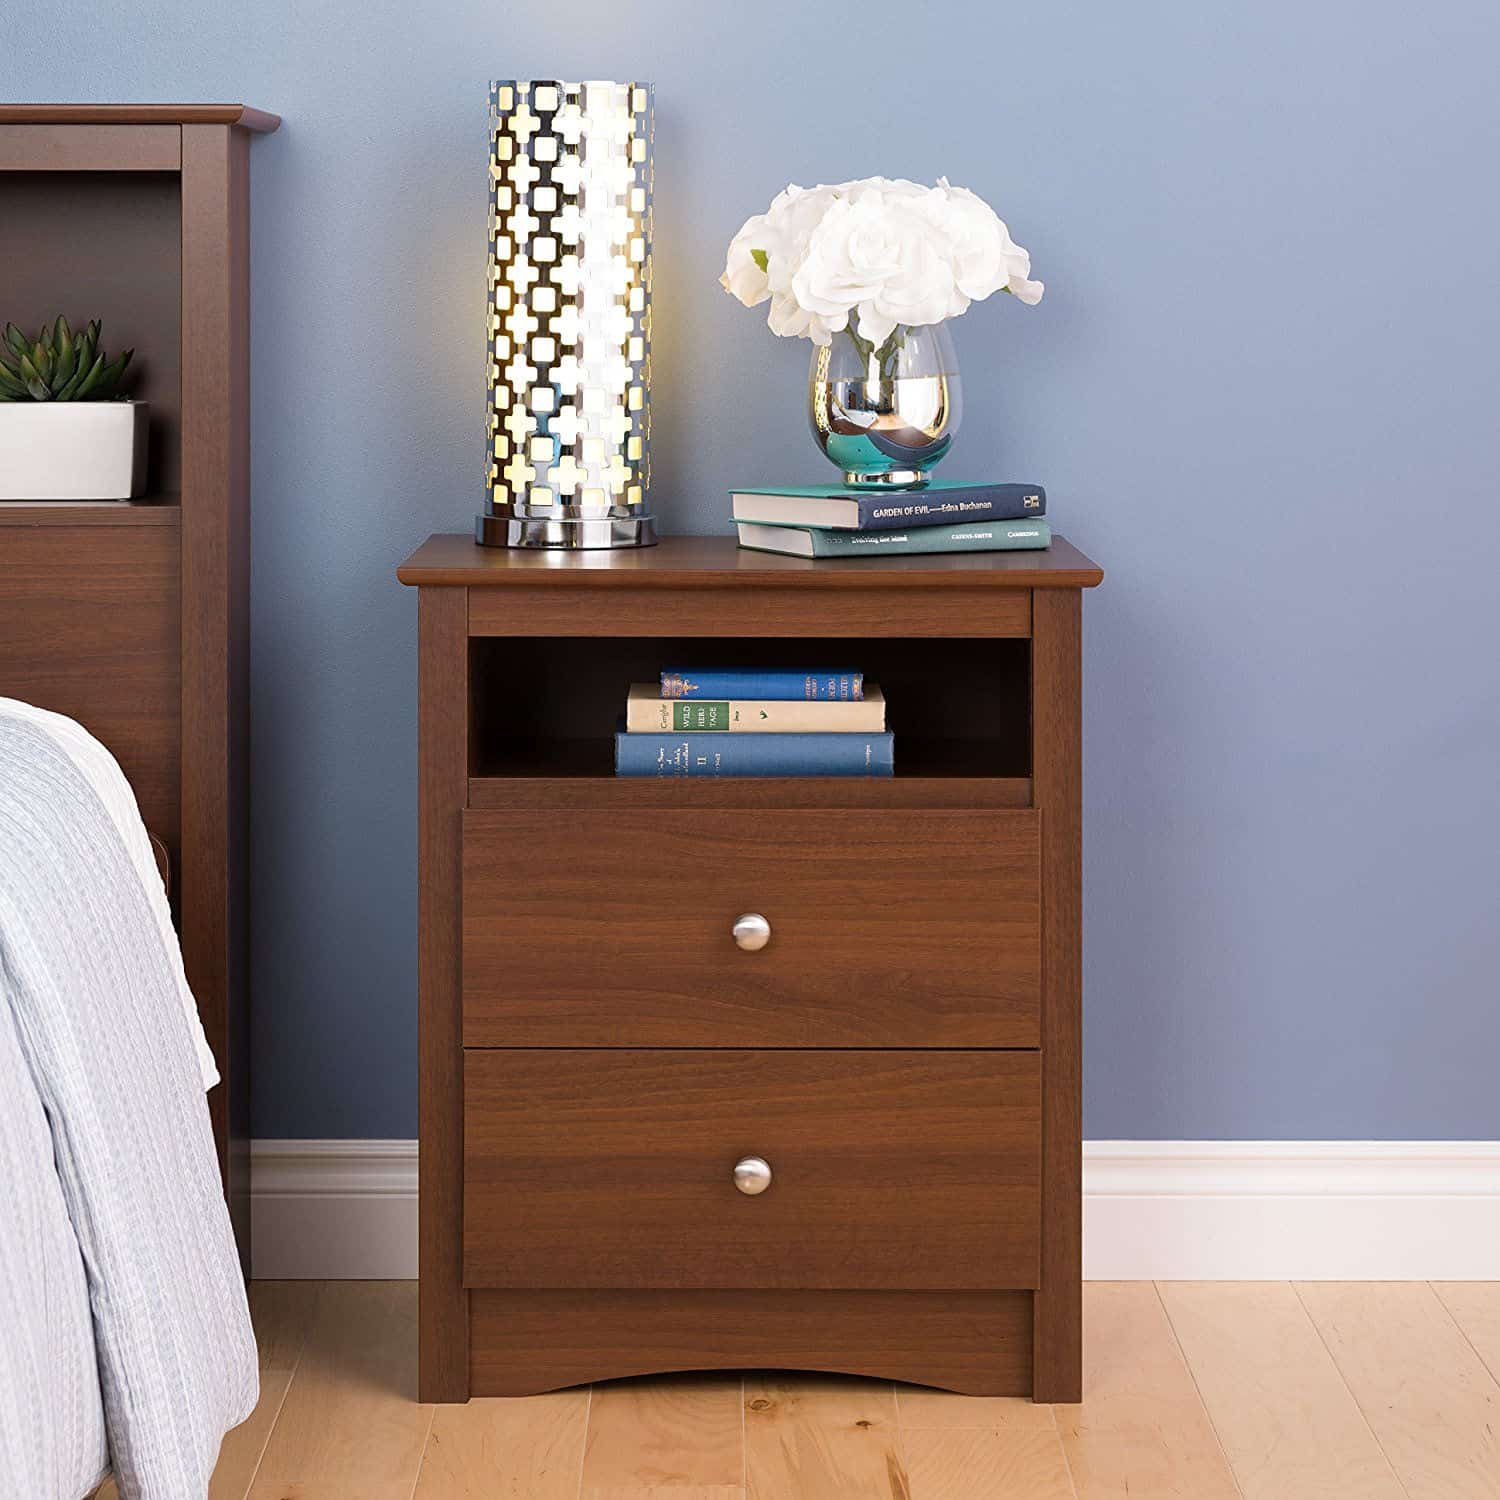 Prepac sonoma 2-drawer nightstand detailed with profiled top edges, an arched kickplate and solid brushed nickel knobs.